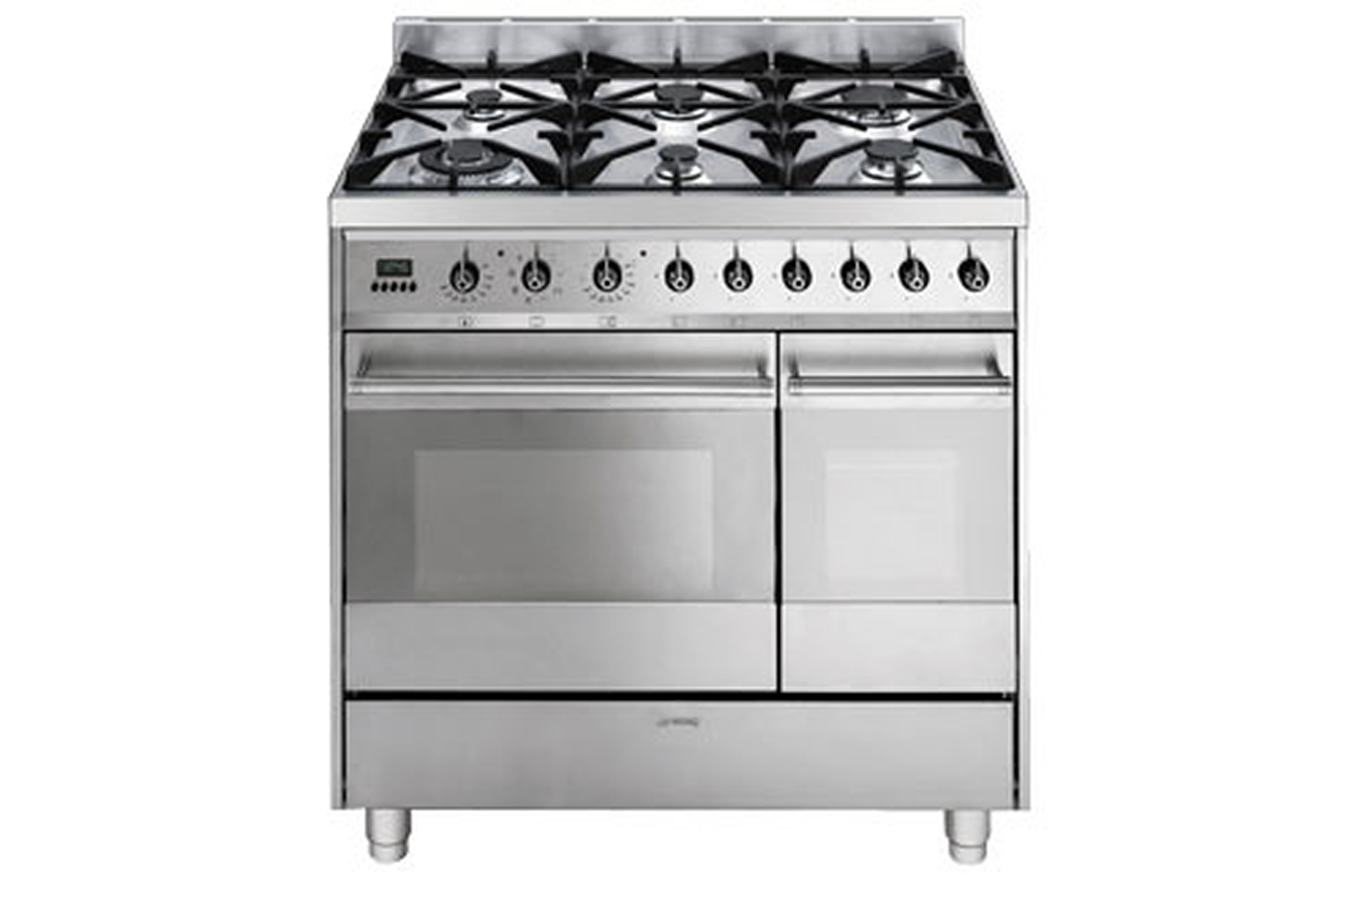 Piano de cuisson smeg c 92 gmx inox 2546213 darty - Piano de cuisson inox ...